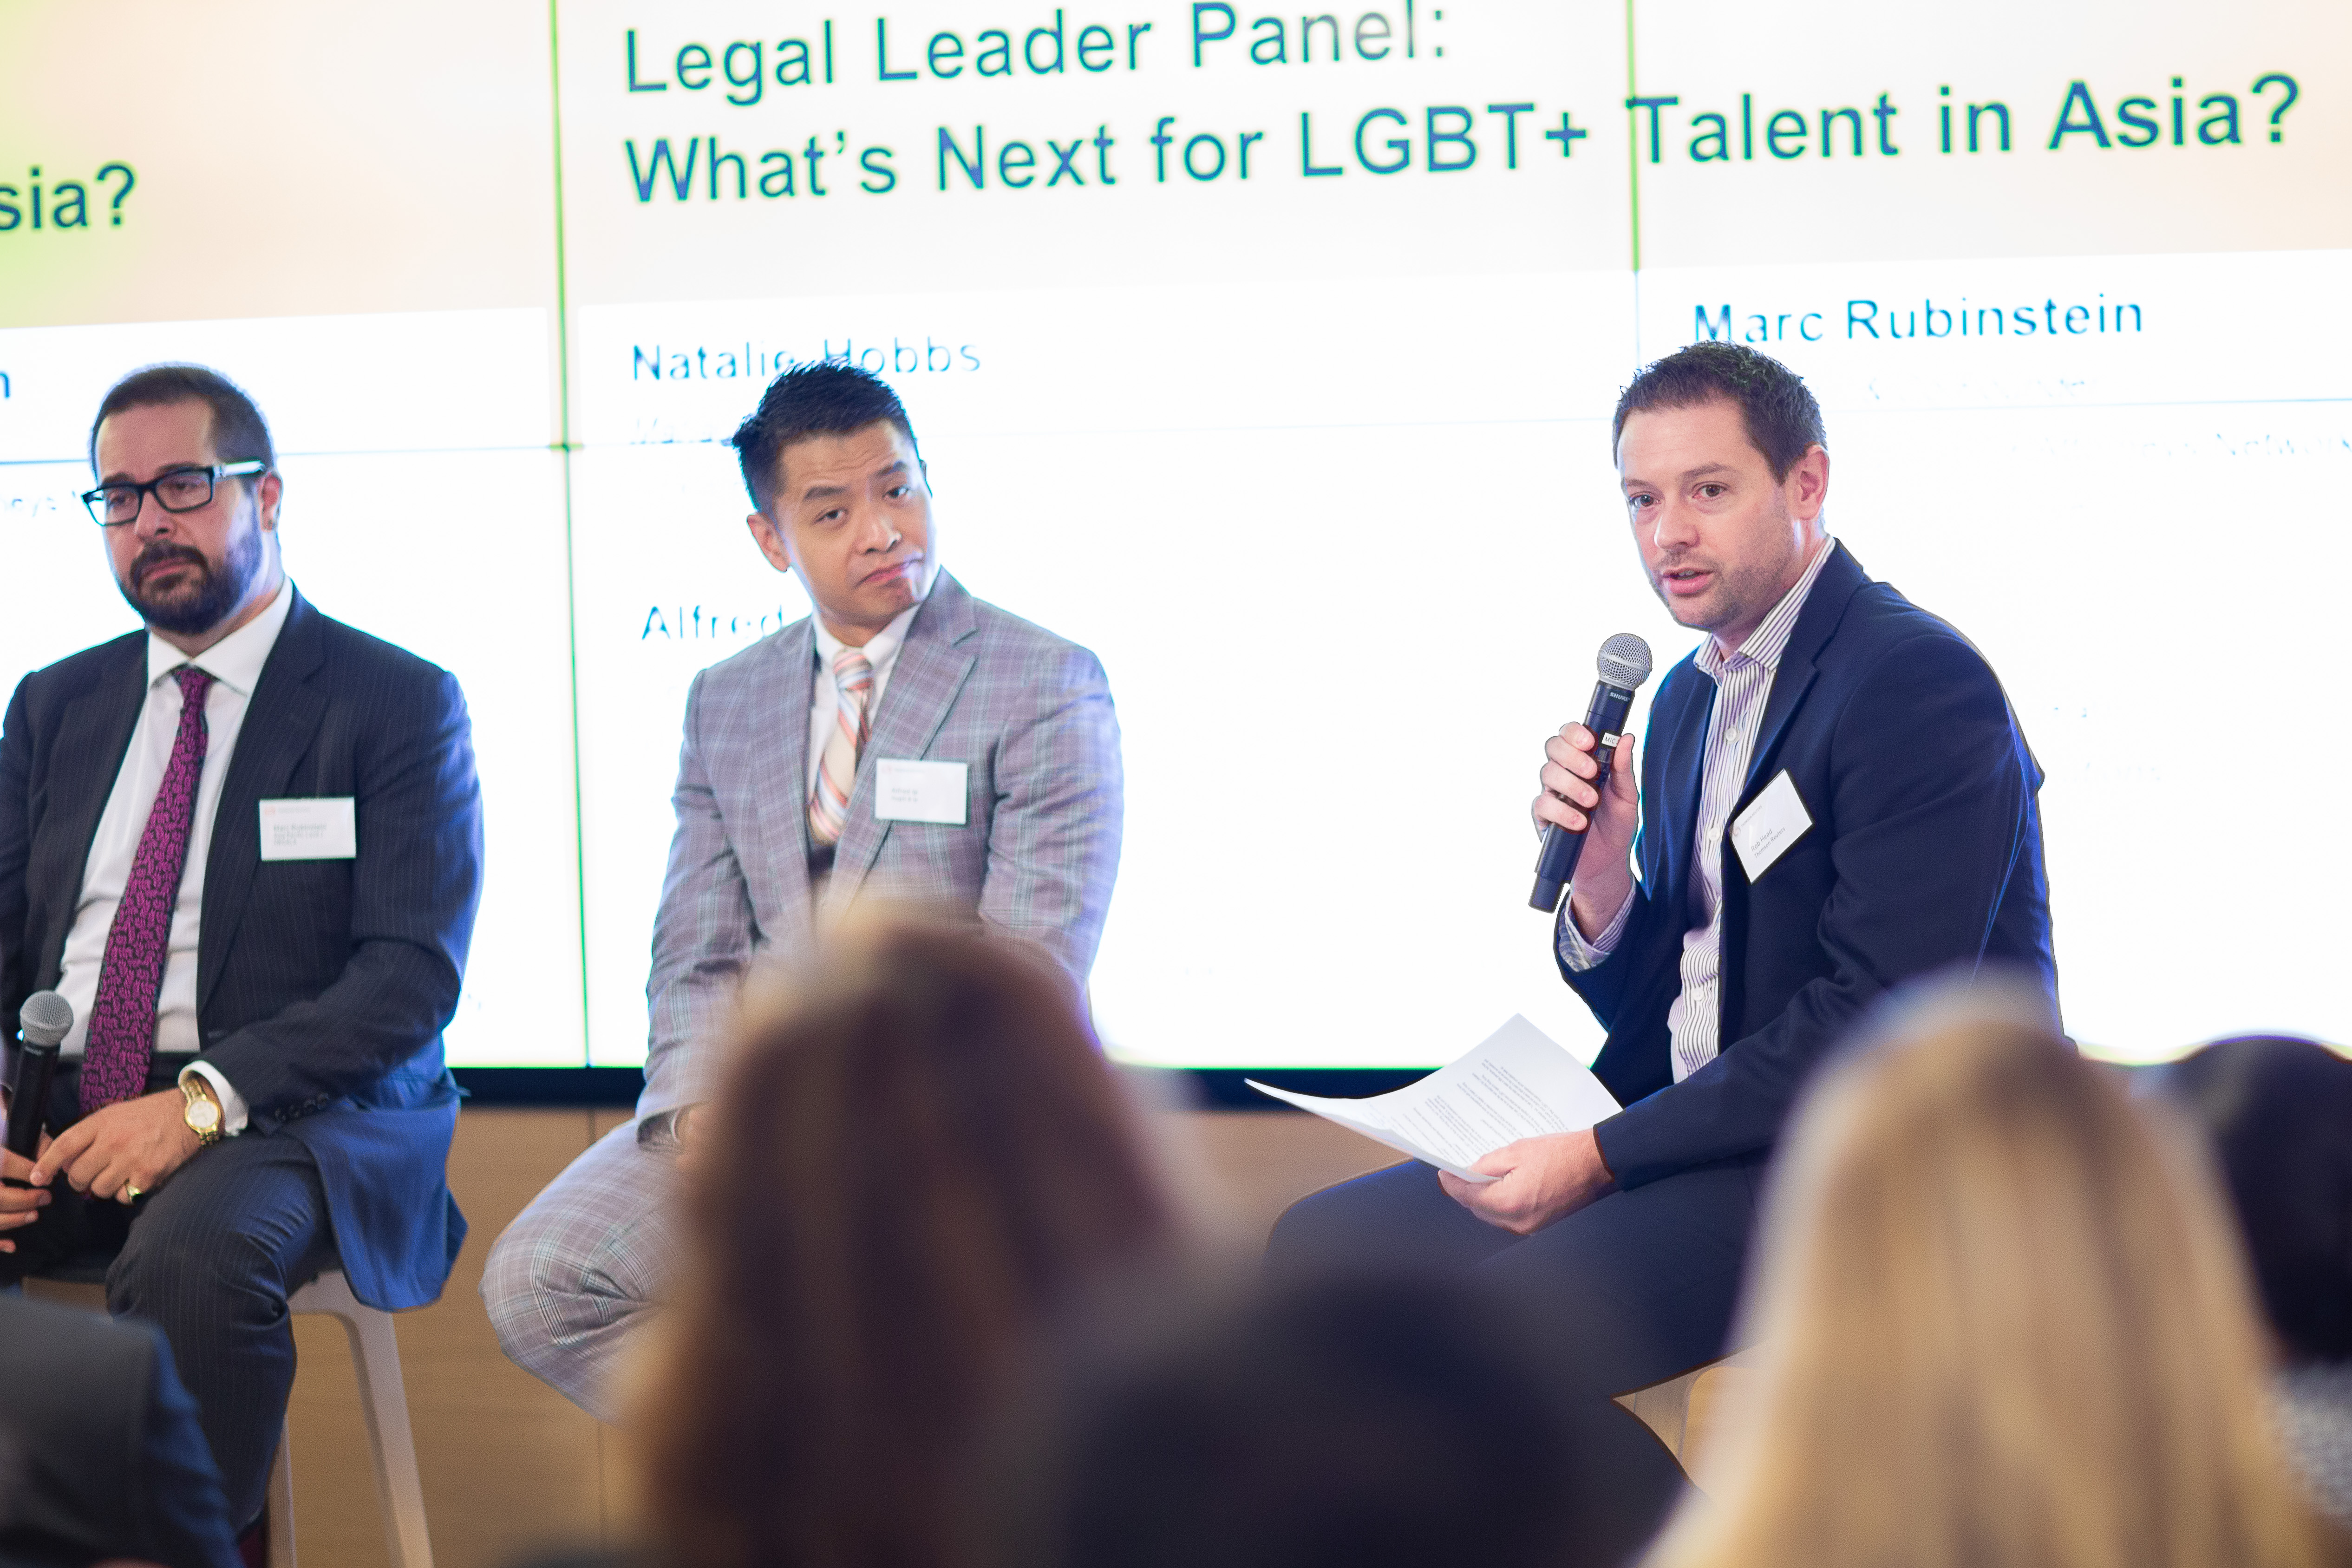 In Hong Kong, Legal Leaders discuss next steps after the QT case 3